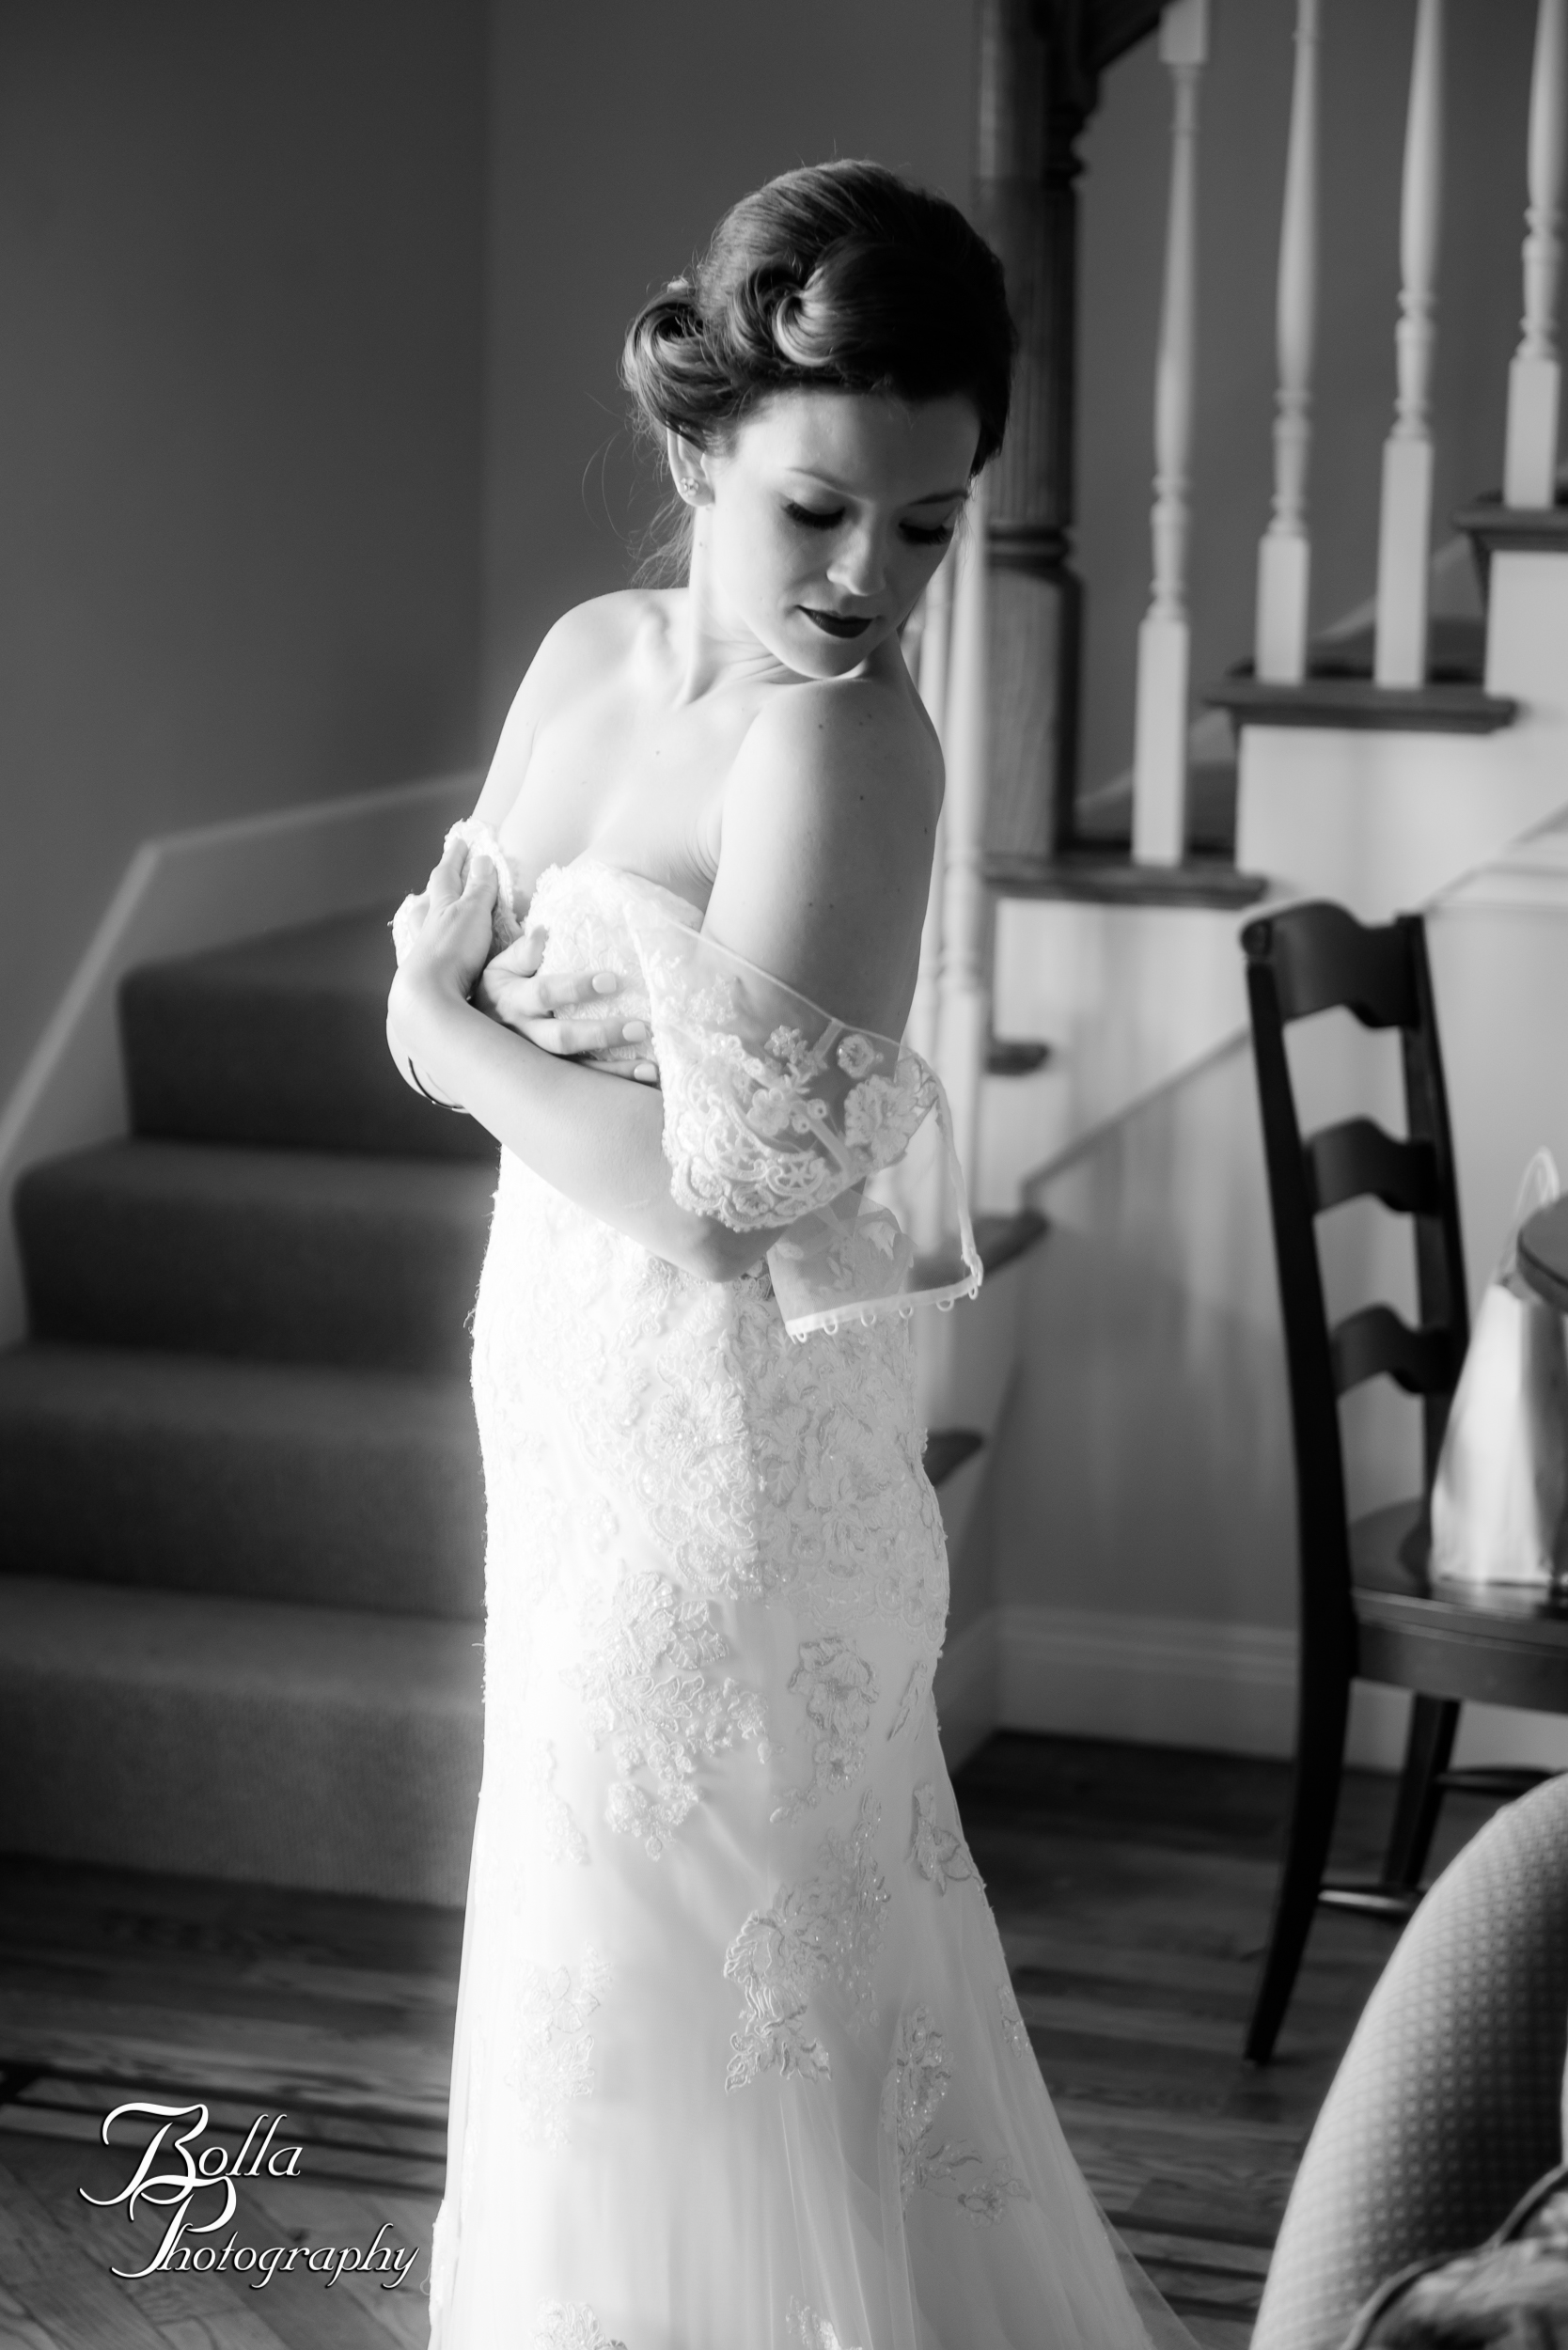 Bolla_photography_edwardsville_wedding_photographer_st_louis_weddings_Chaumette_winery_Mikusch-0088.jpg